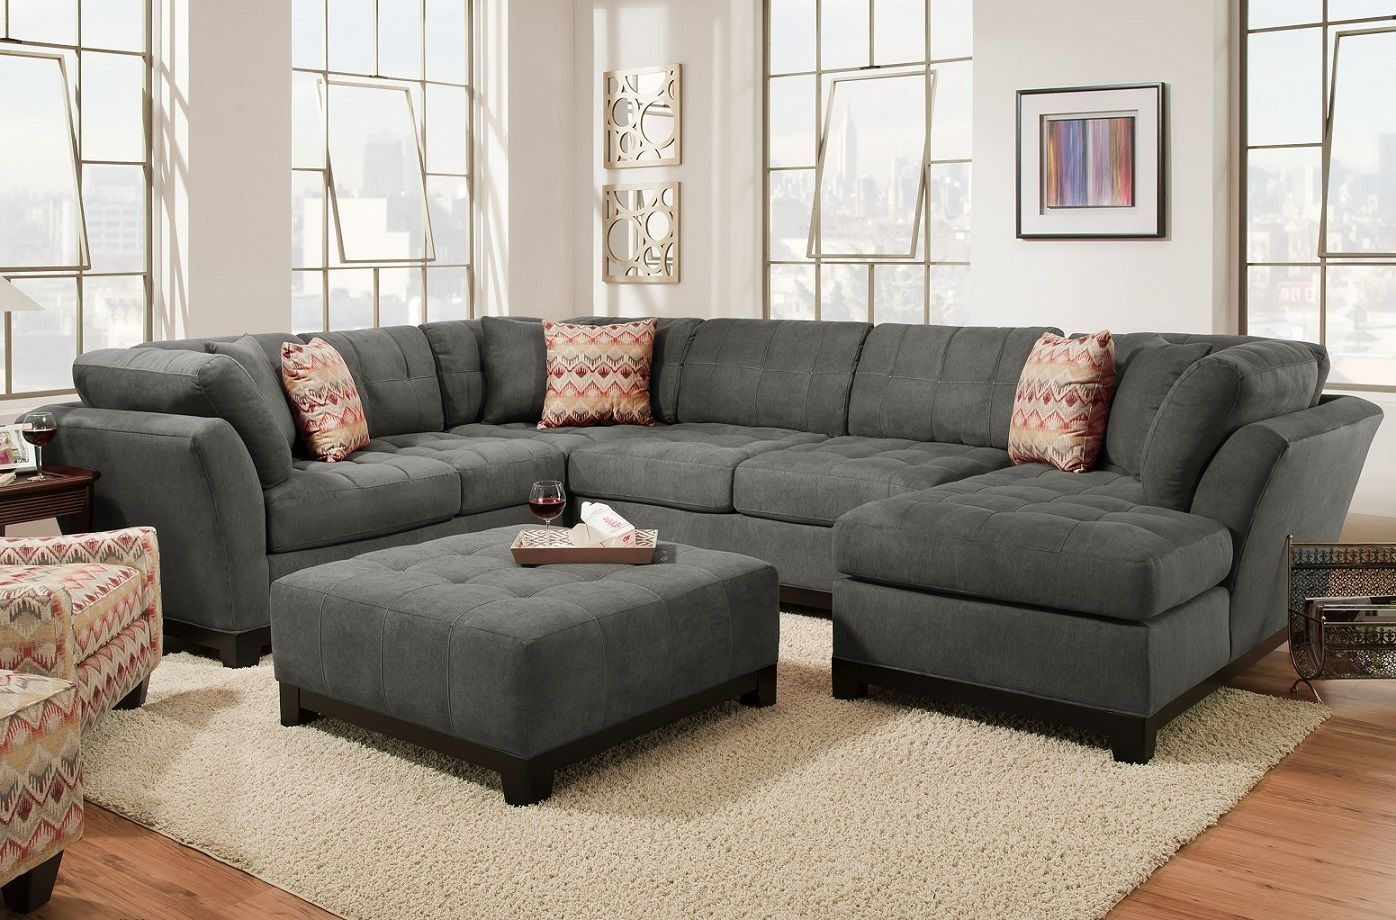 Best Loxley Charcoal Sectional 3 Piece Sectional Sofa 640 x 480